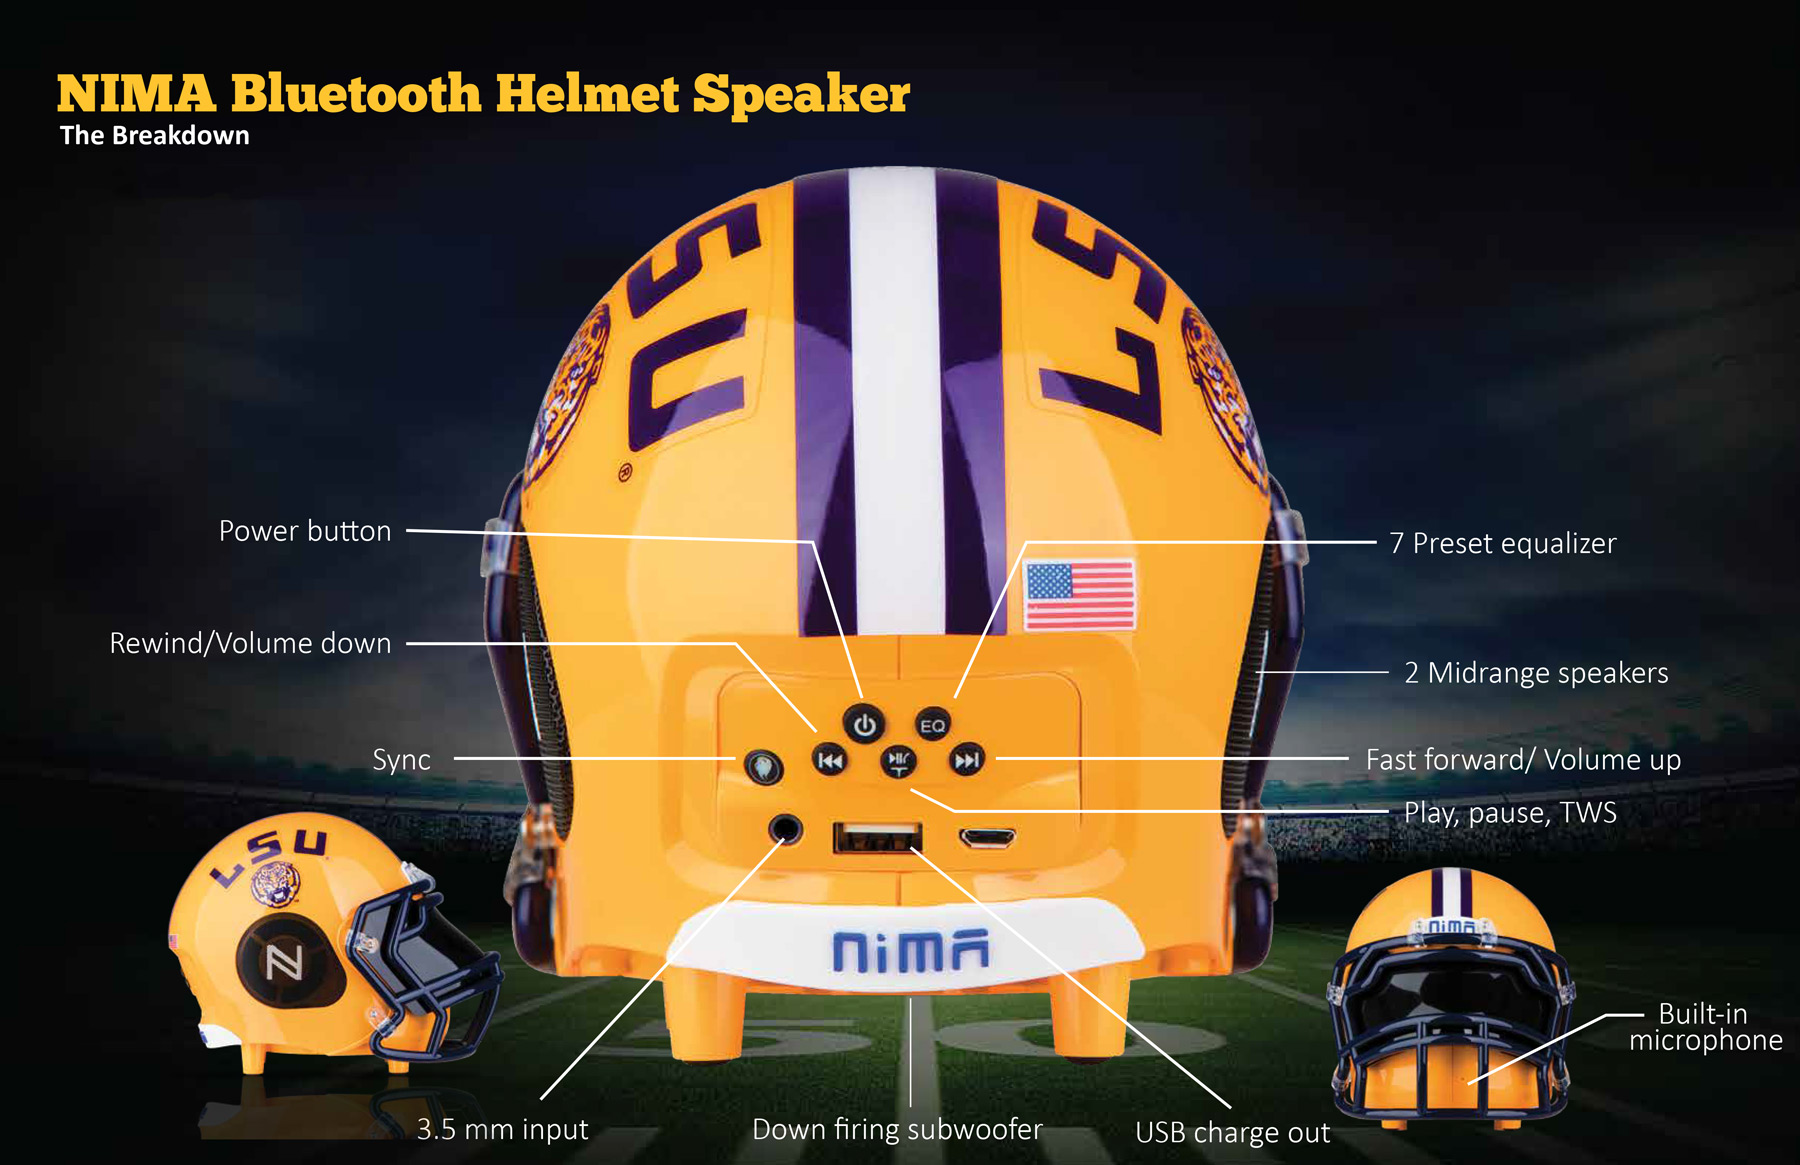 Nima Bt Speaker Review Superfan Your Ncaa Sound In Style Speakerconnectiondiagramjpg Around The Right And Left Of Helmet Youll Find Team Branding Along With Mid Range Speakers On Both Sides Logo Is Prominently